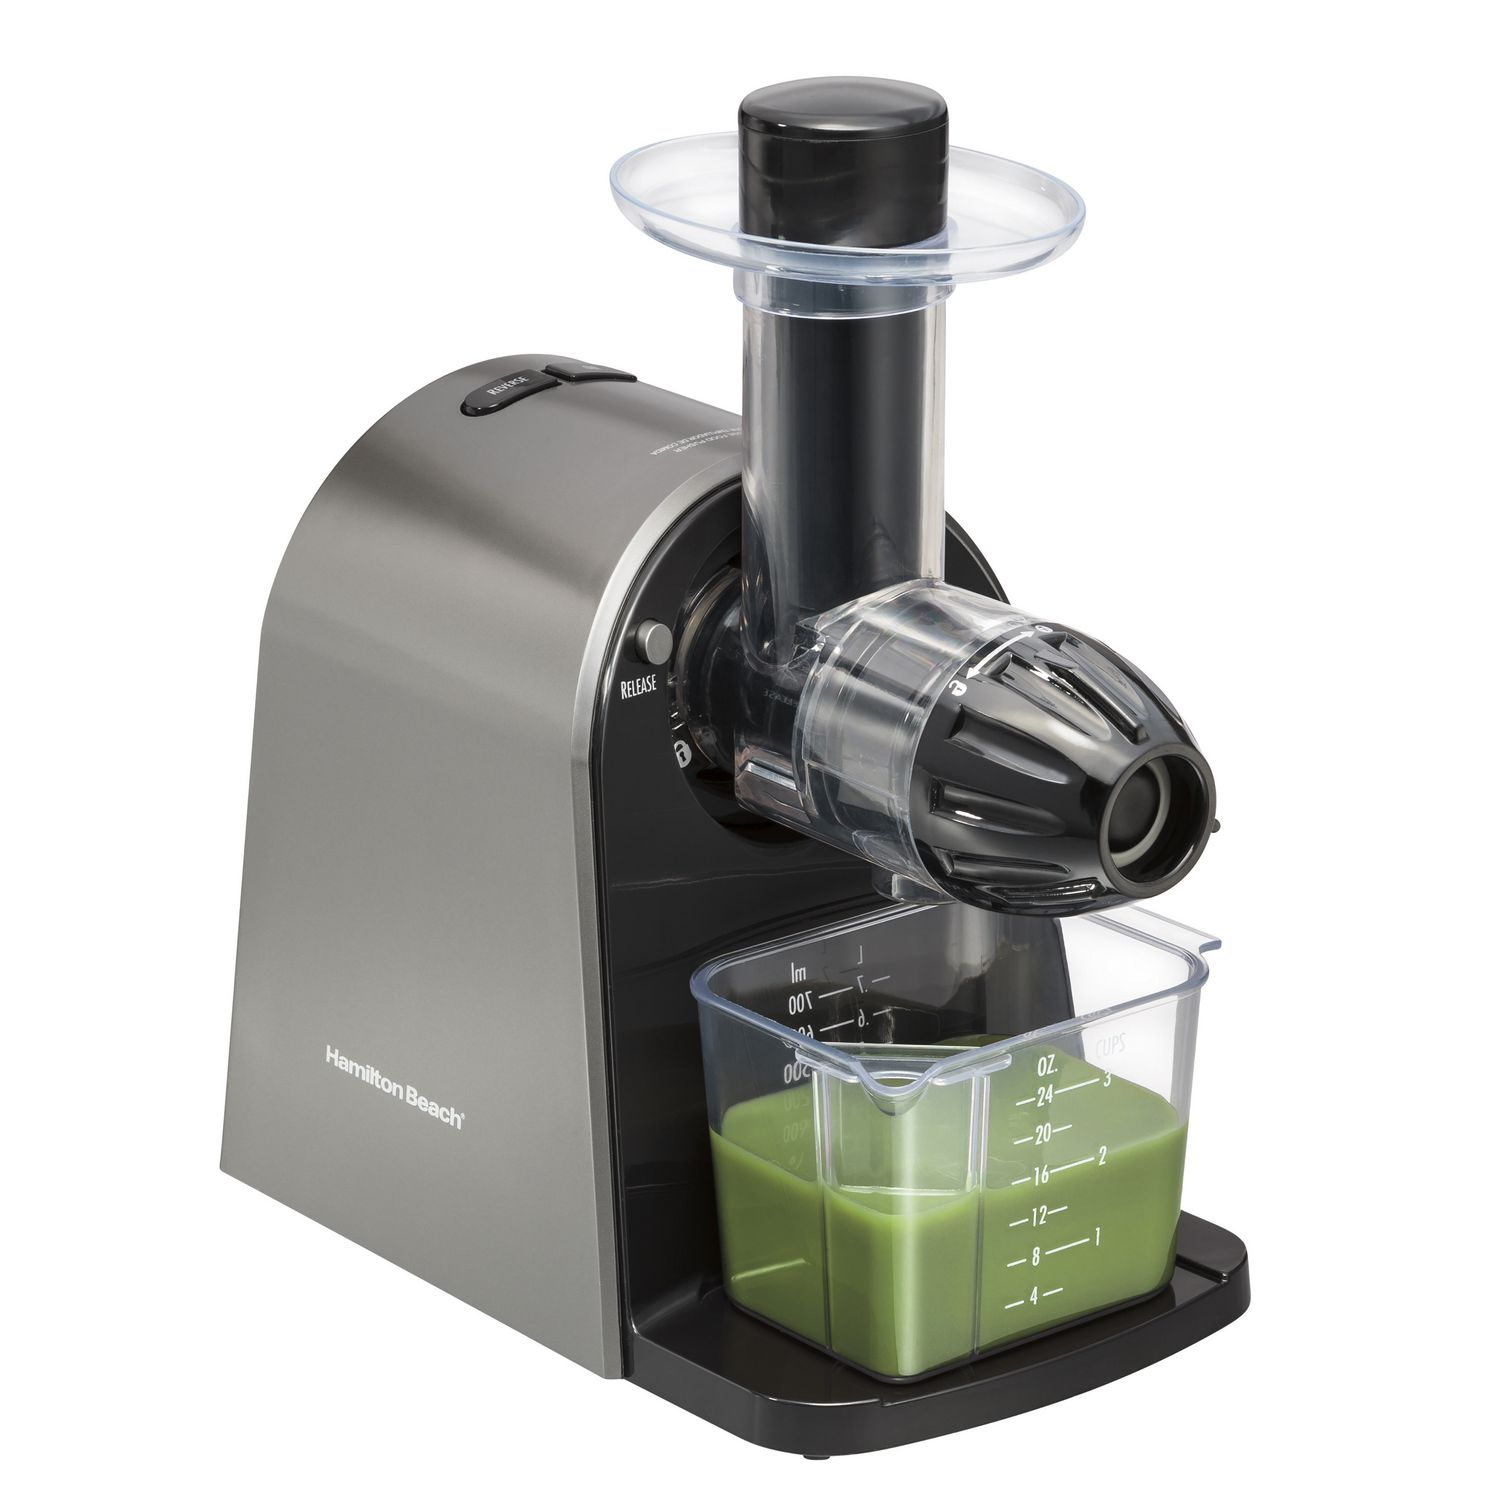 Black and brushed stainless steel Hamilton Beach slow juicer - best juicer for celery